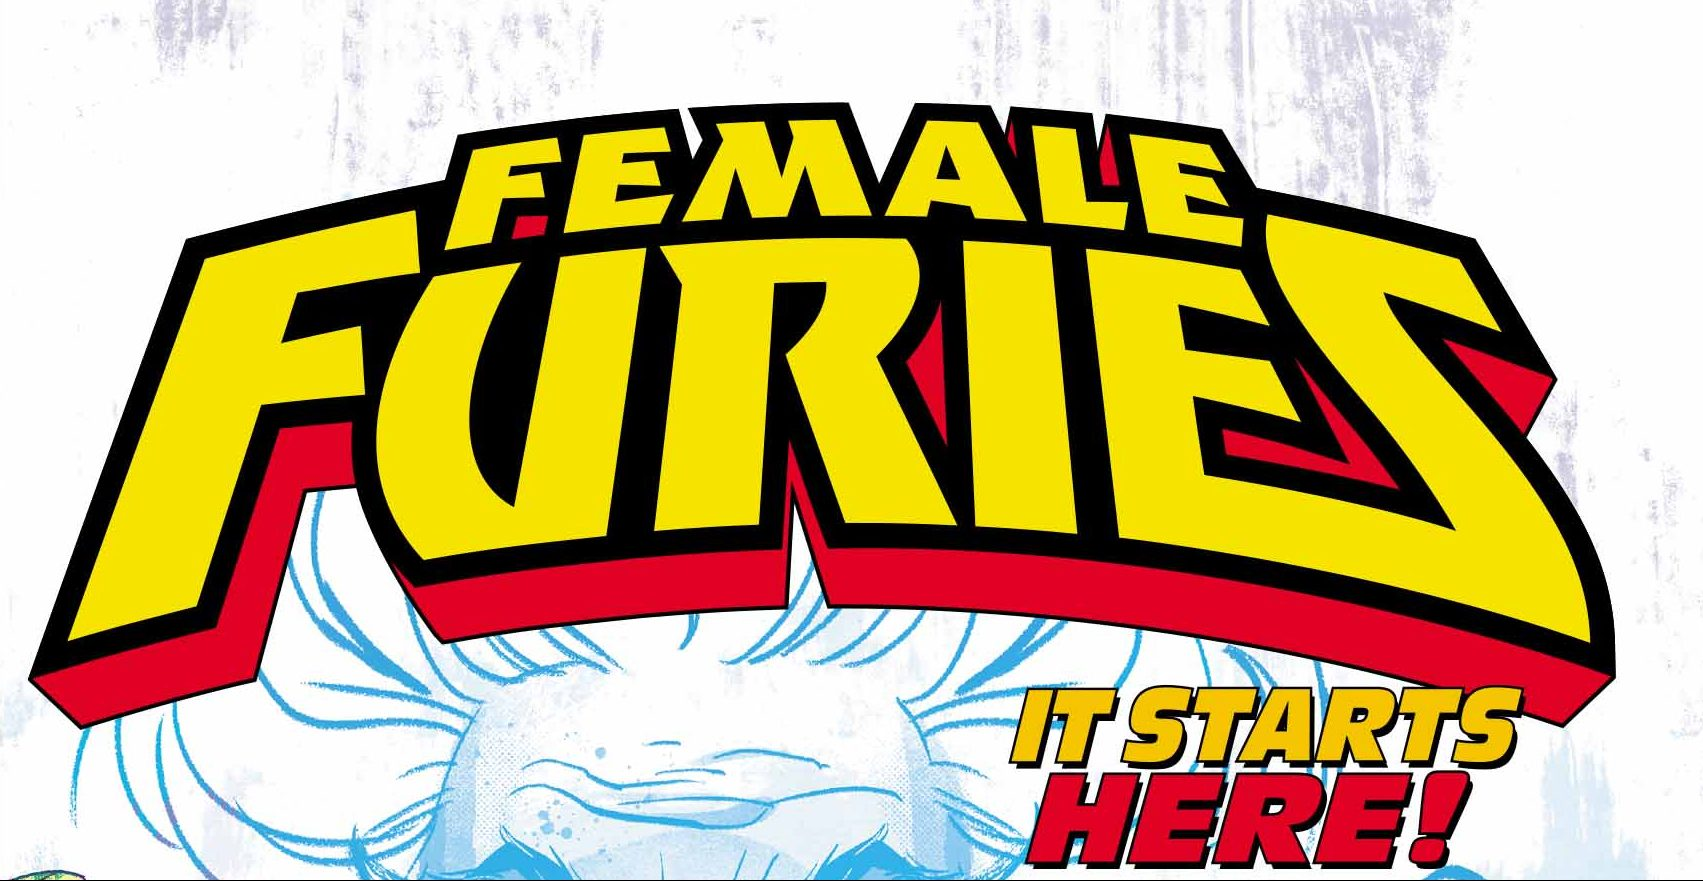 Female Furies is a must read.